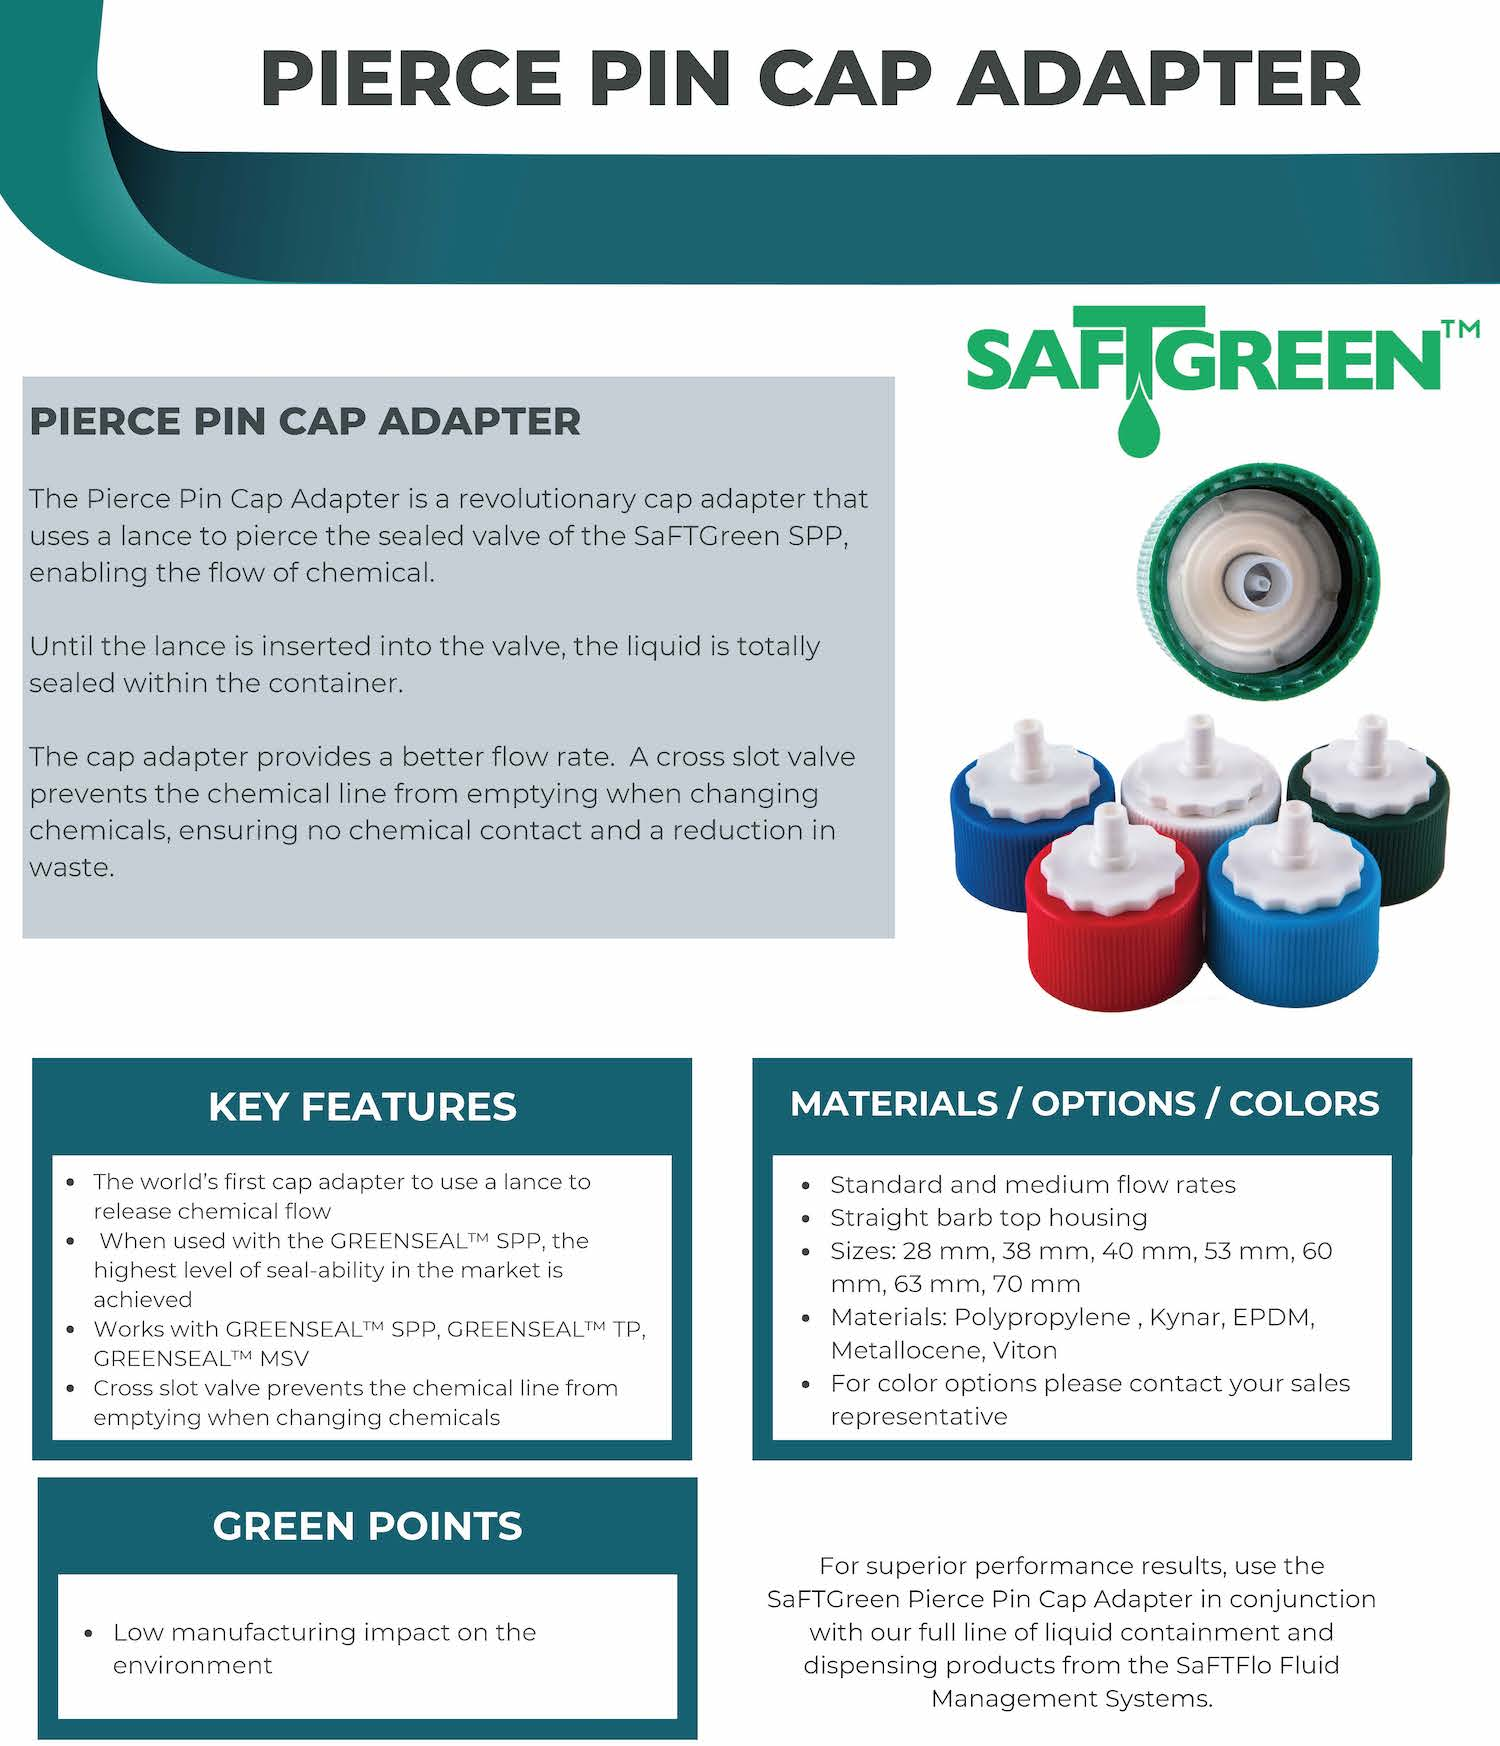 SaFTFlo Fluid Management Systems | SafTGreen PP Cap Adapter